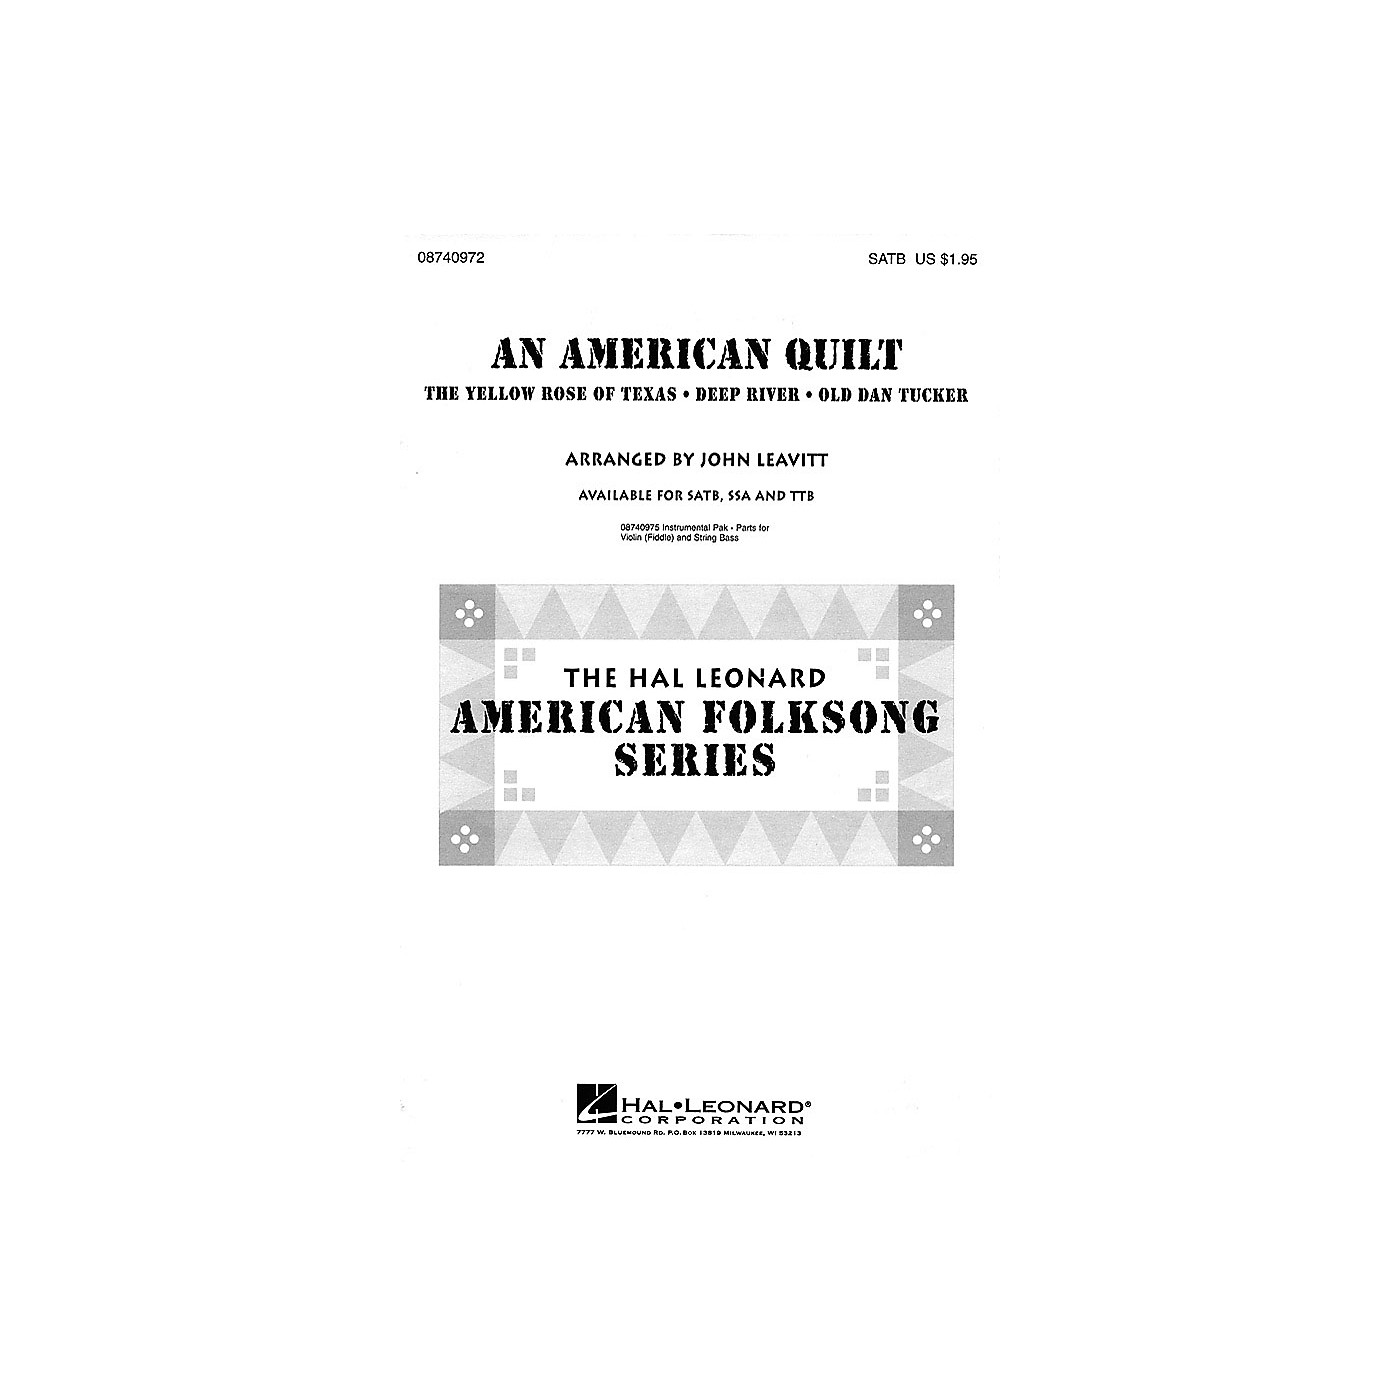 Hal Leonard An American Quilt (A Collection of 3 American Folksongs) SATB arranged by John Leavitt thumbnail